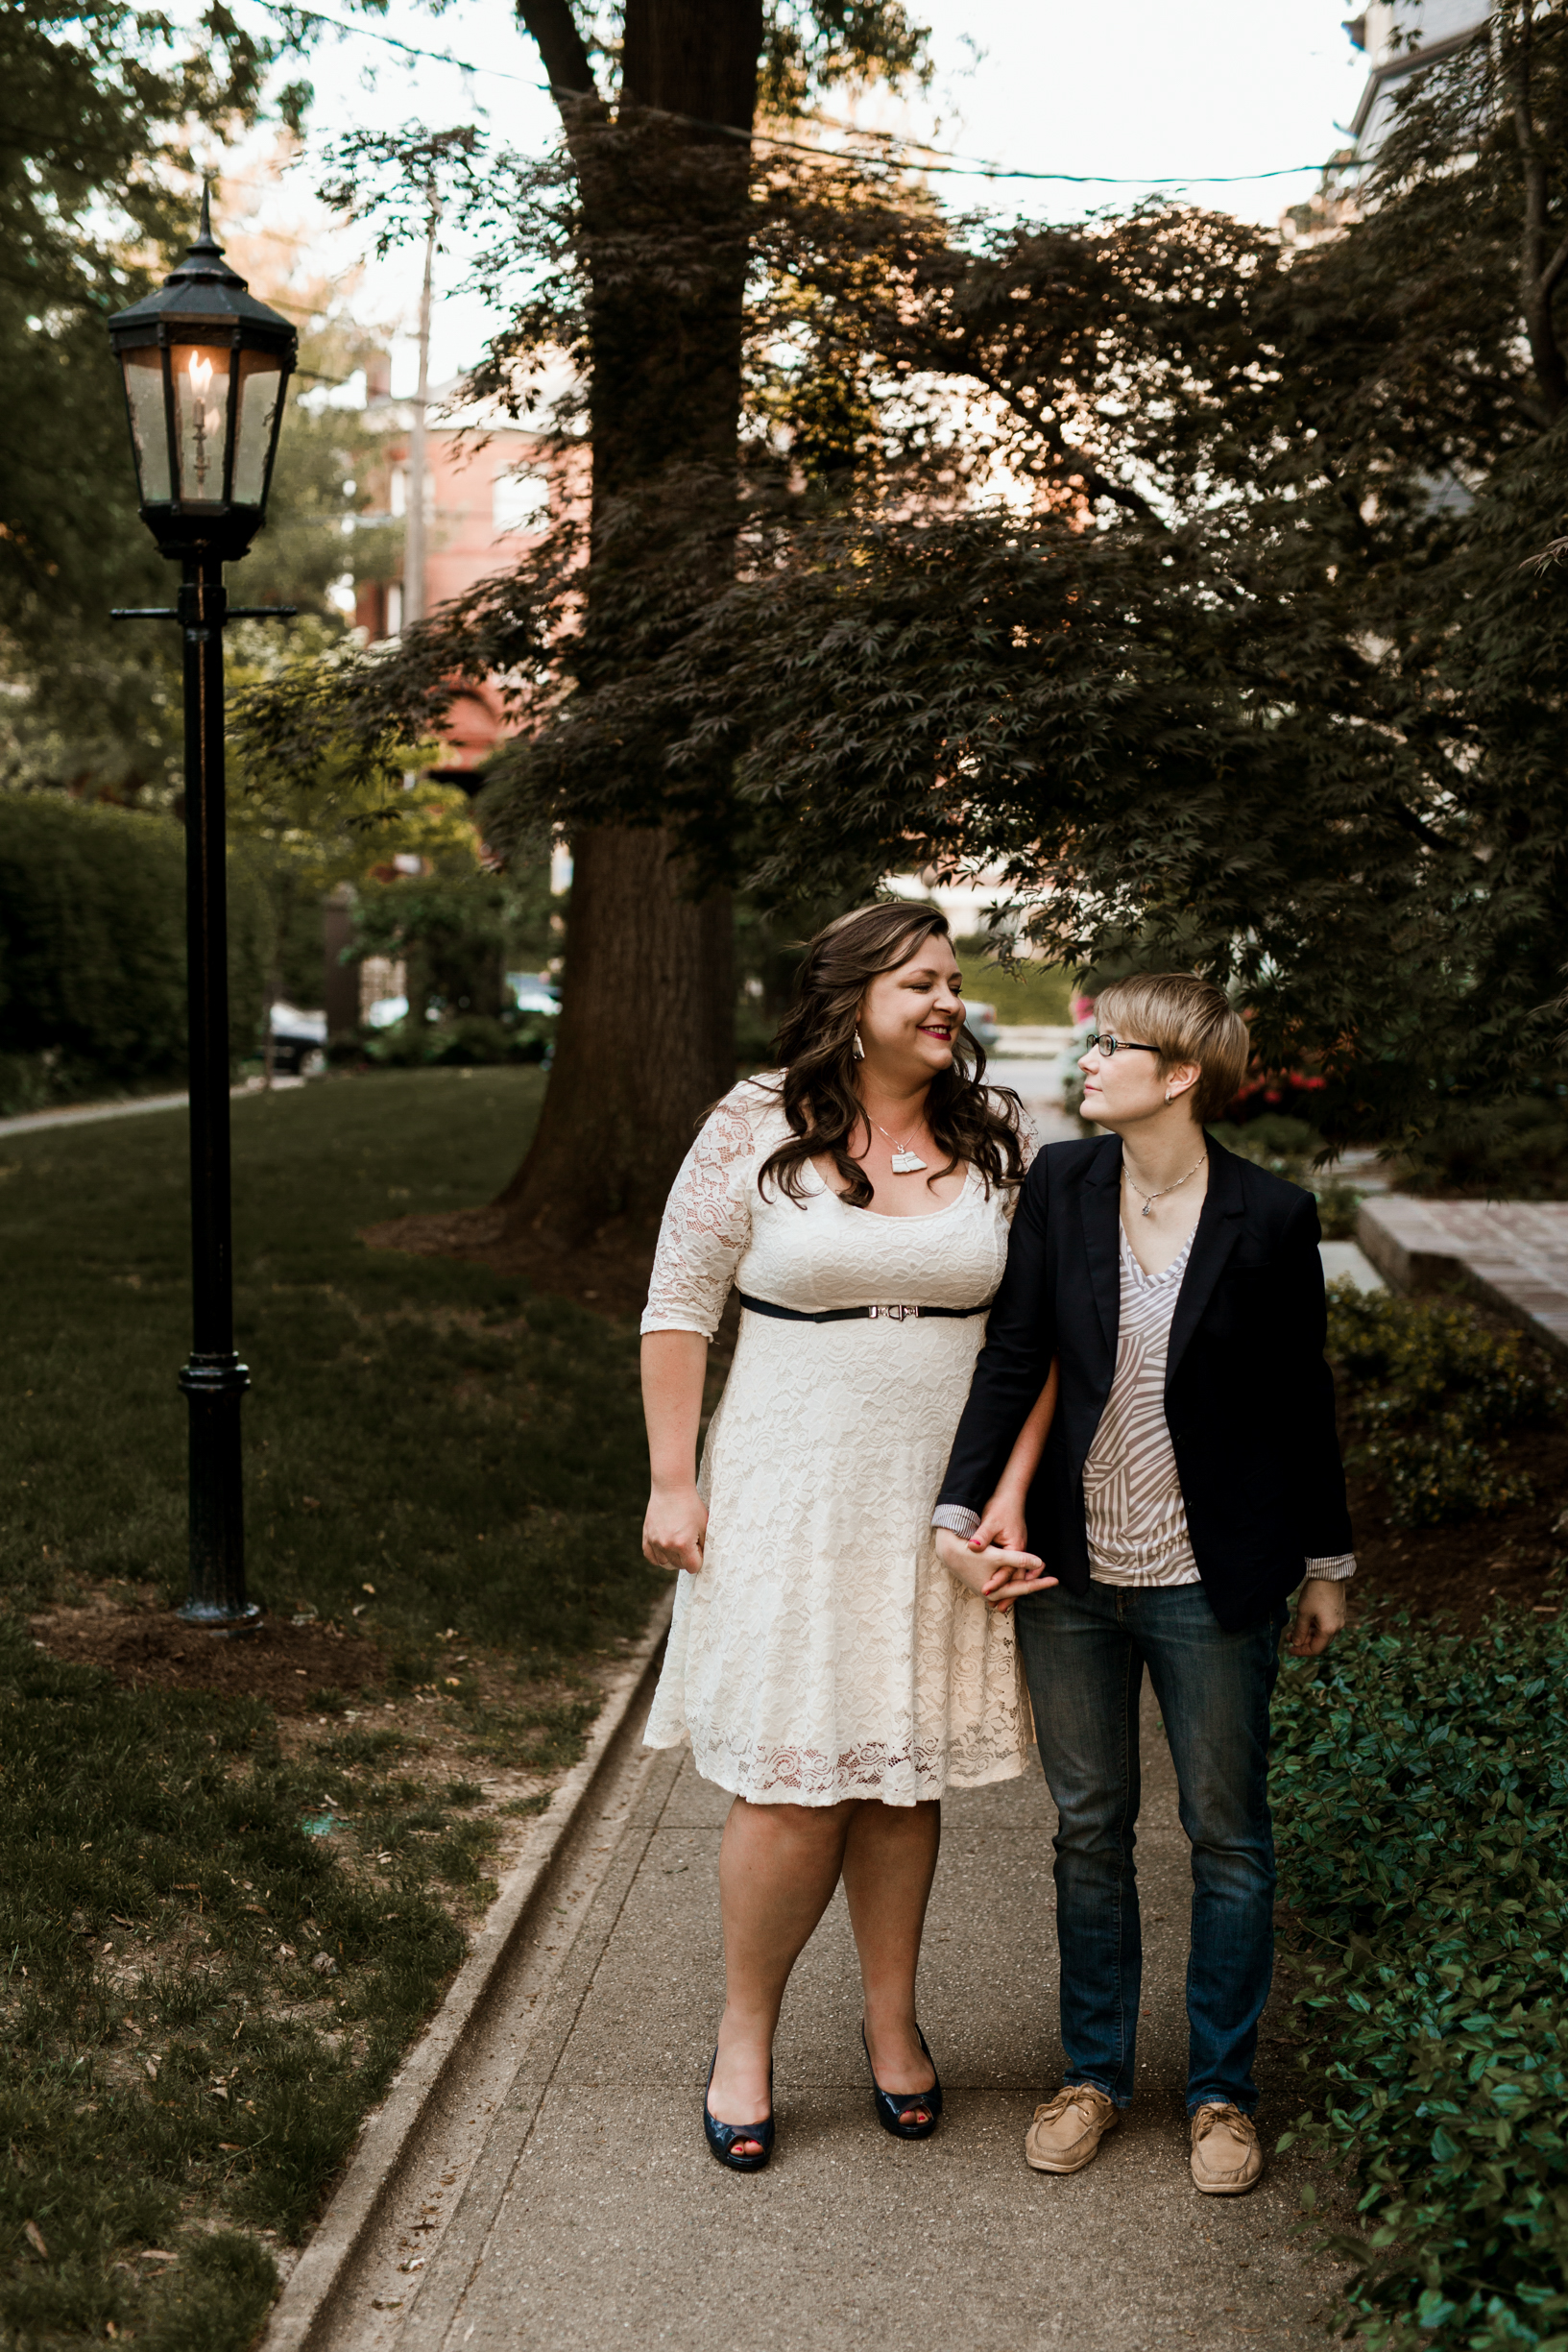 Crystal Ludwick Photo Louisville, Kentucky Wedding Photographer (14 of 24).jpg